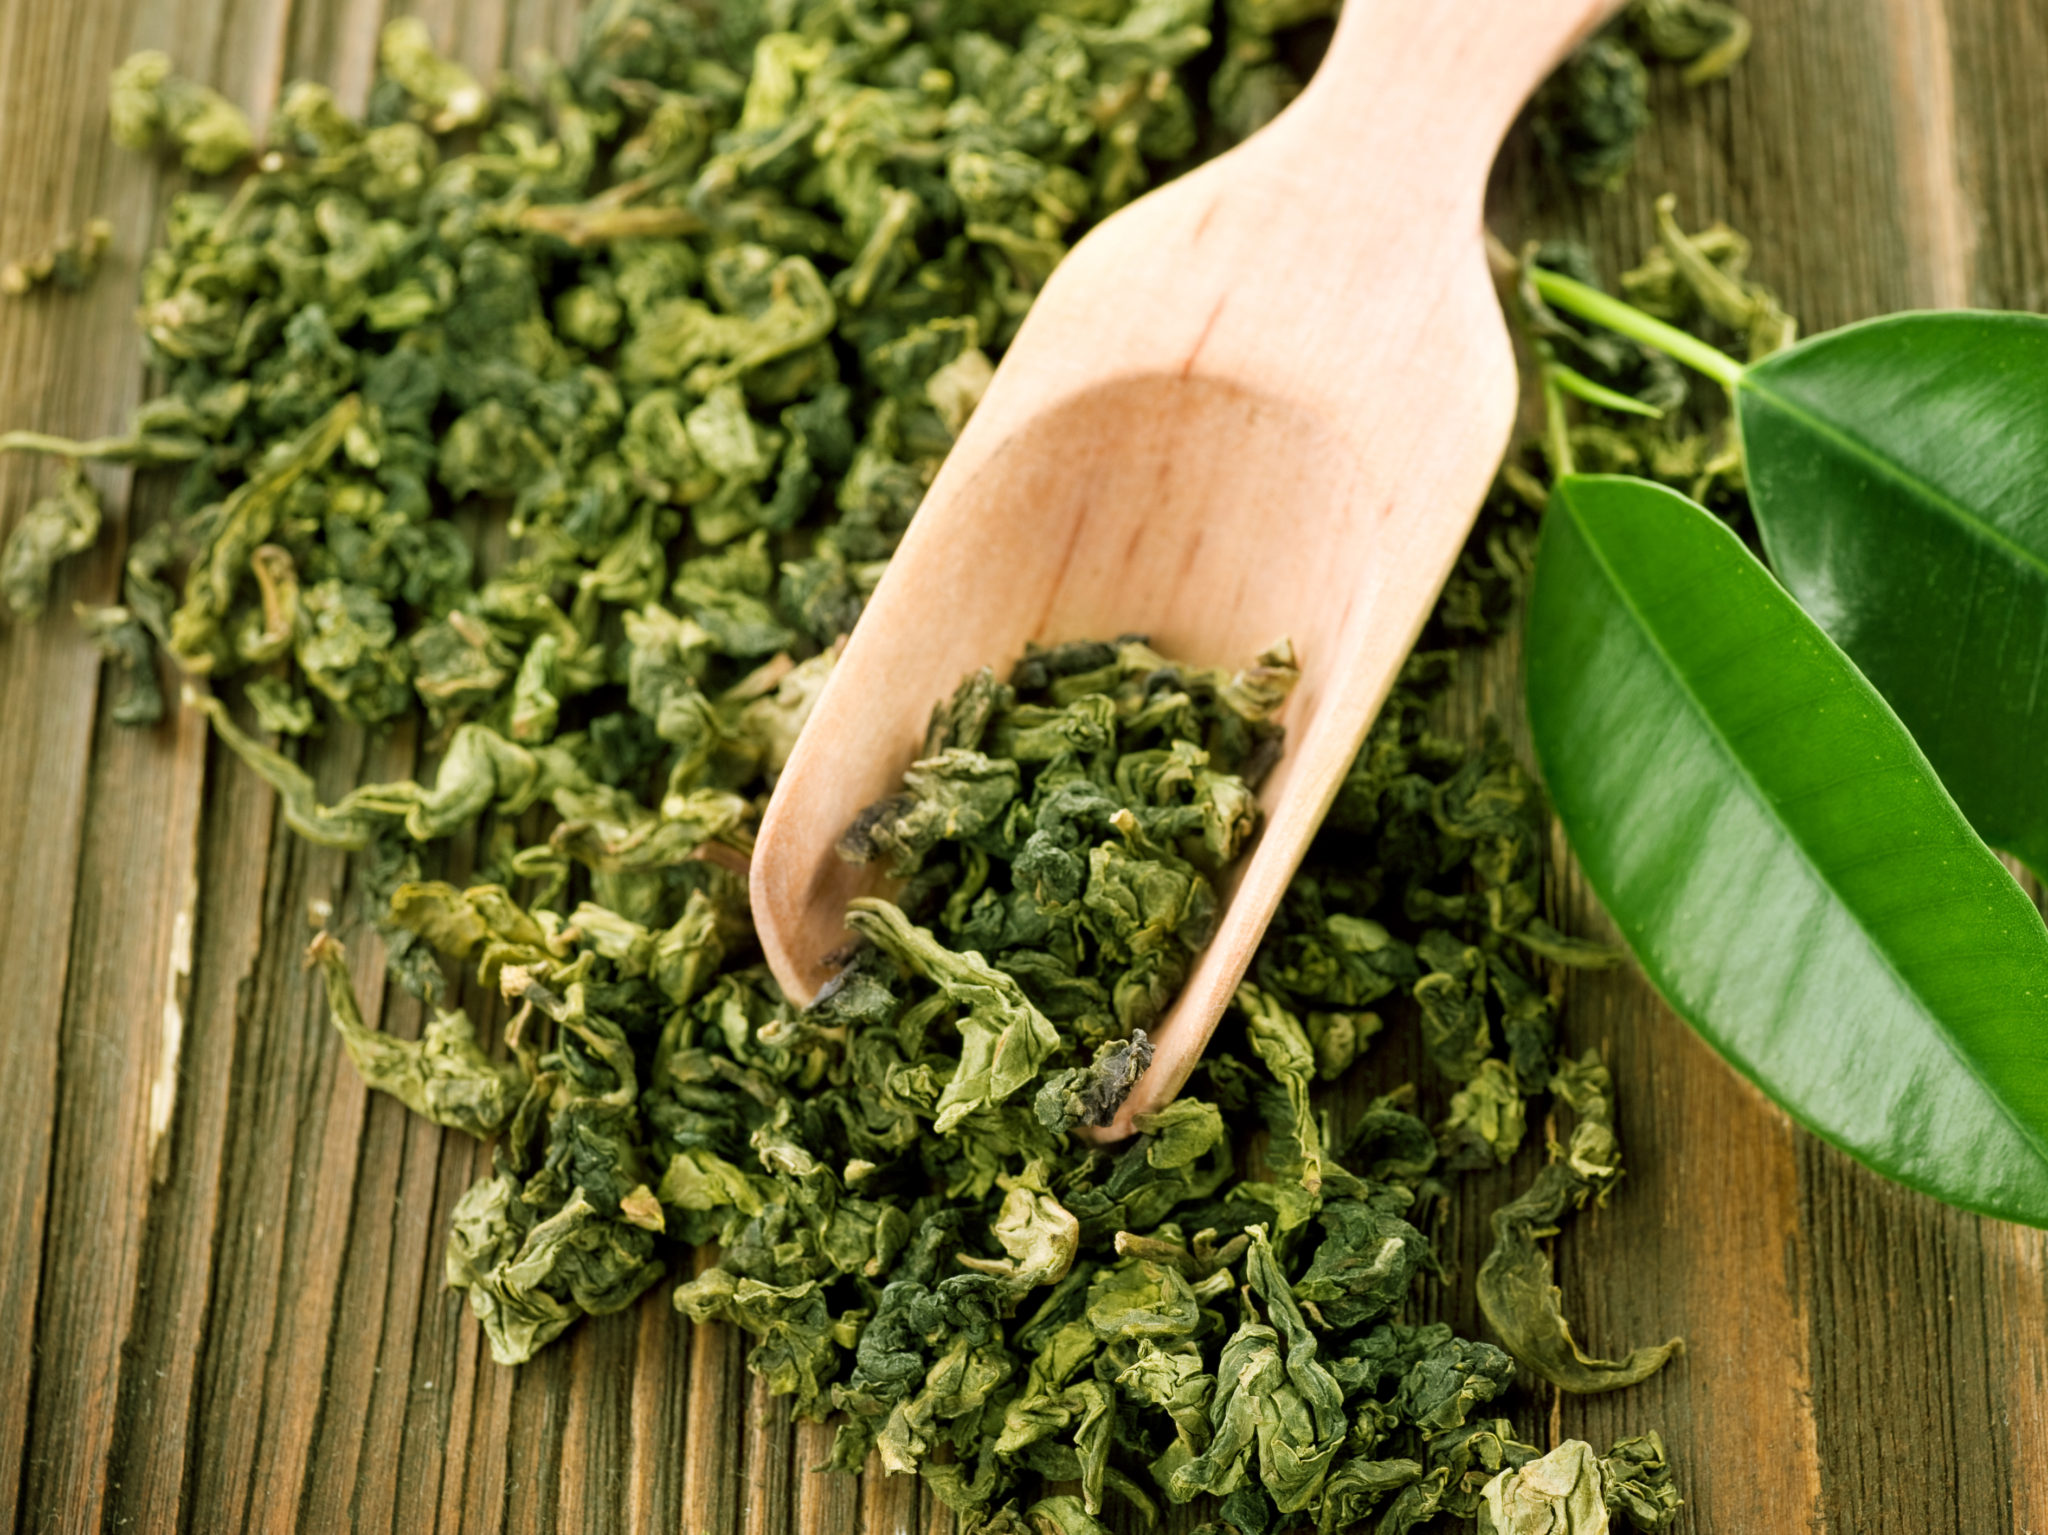 dried loose leaf green tea and plant leaves on a wooden surface with a wooden spoon for scooping